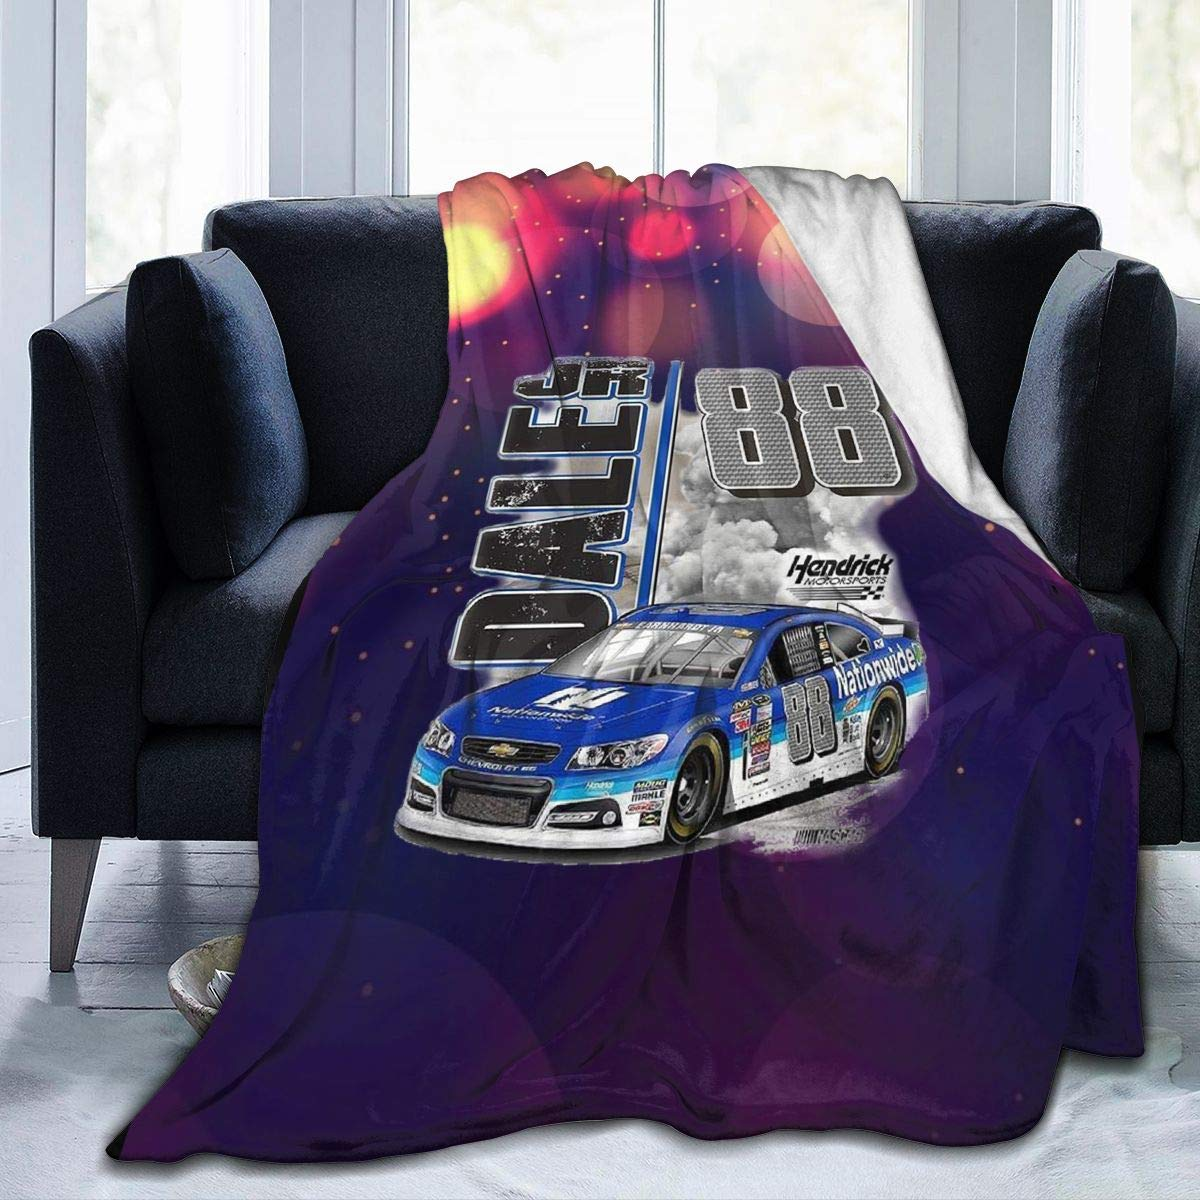 """WangJhjfg Dale Earnhardt Jr Nascar Racing Trend Winter Ultra-Soft Micro Fleece Blanket Printed for Sofa Bed Couch Chair Living Room 60""""x50"""""""